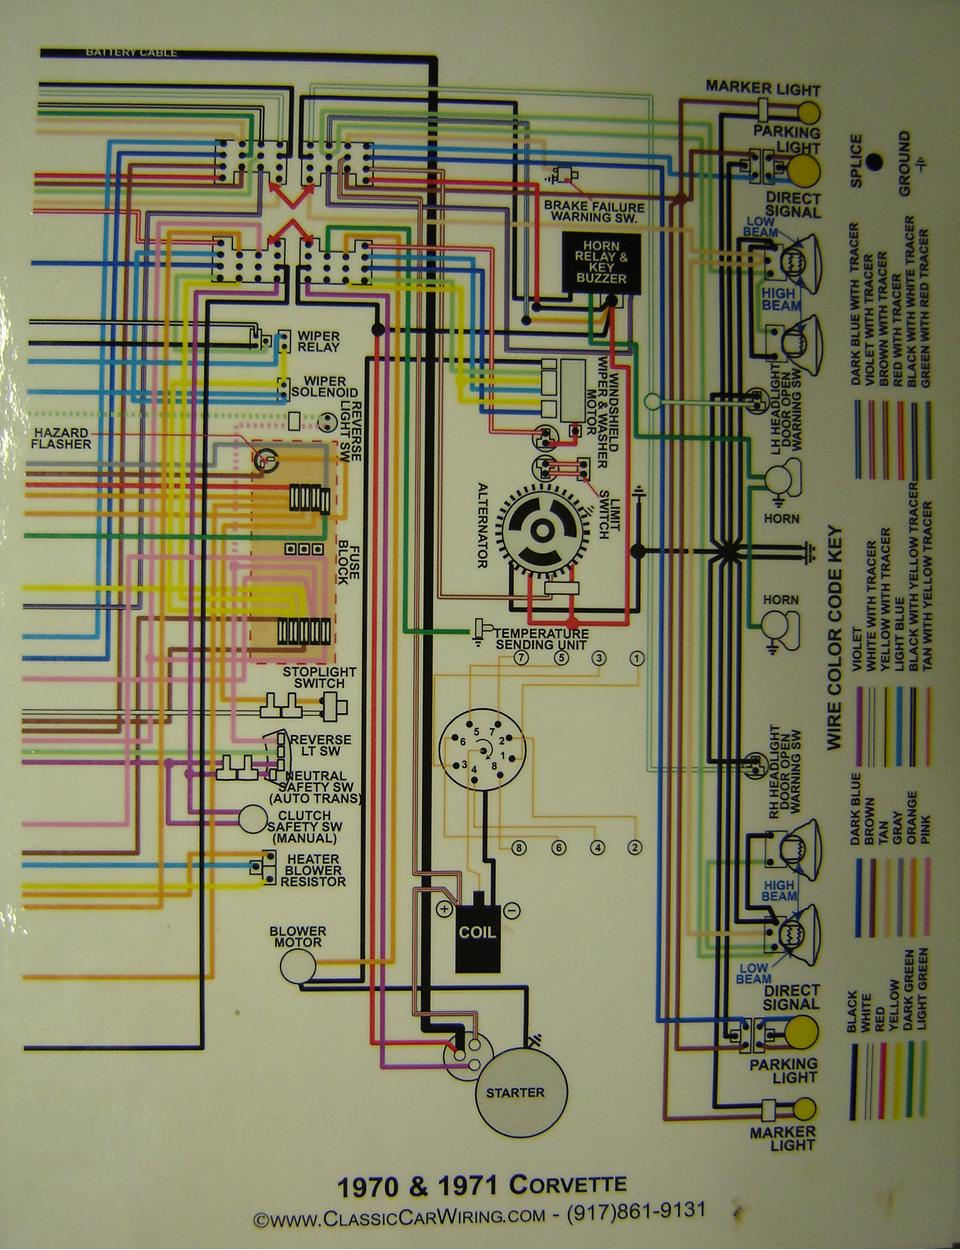 1970 71 corvette color wiring diagram B chevy diagrams 73 corvette wiring diagram pdf at honlapkeszites.co